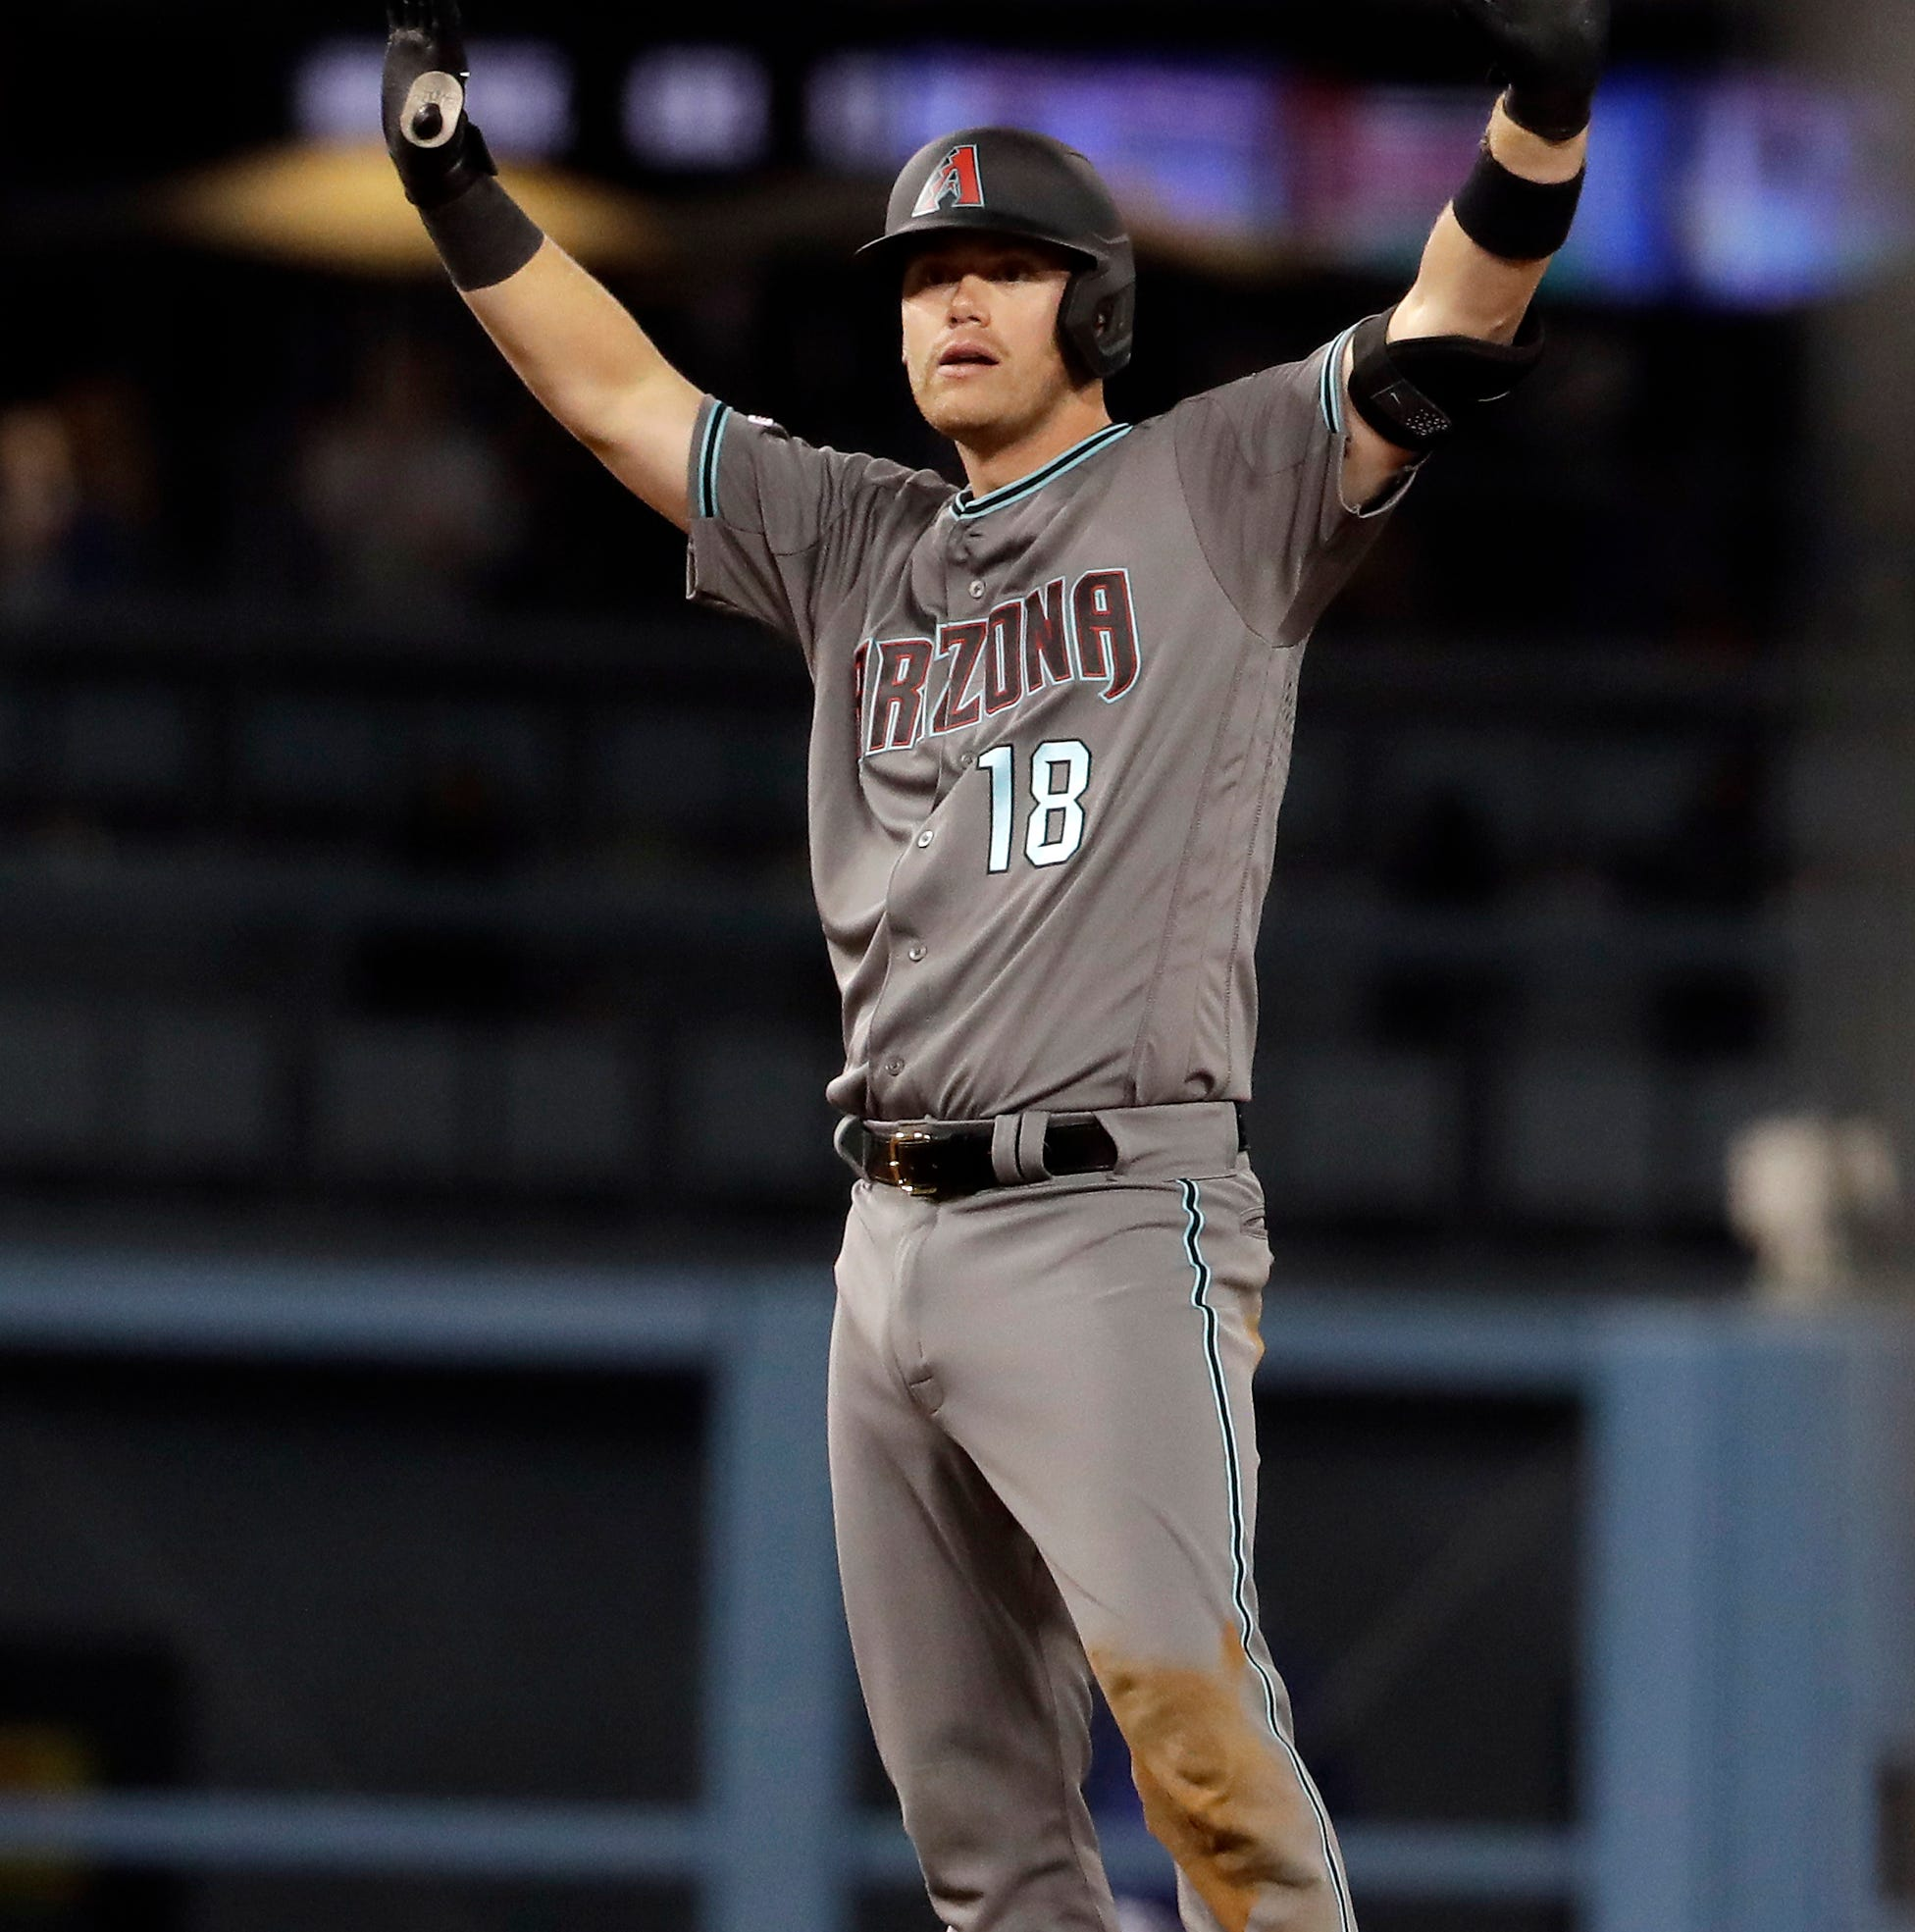 Clutch hitting drives Diamondbacks 6-hour marathon win over Dodgers